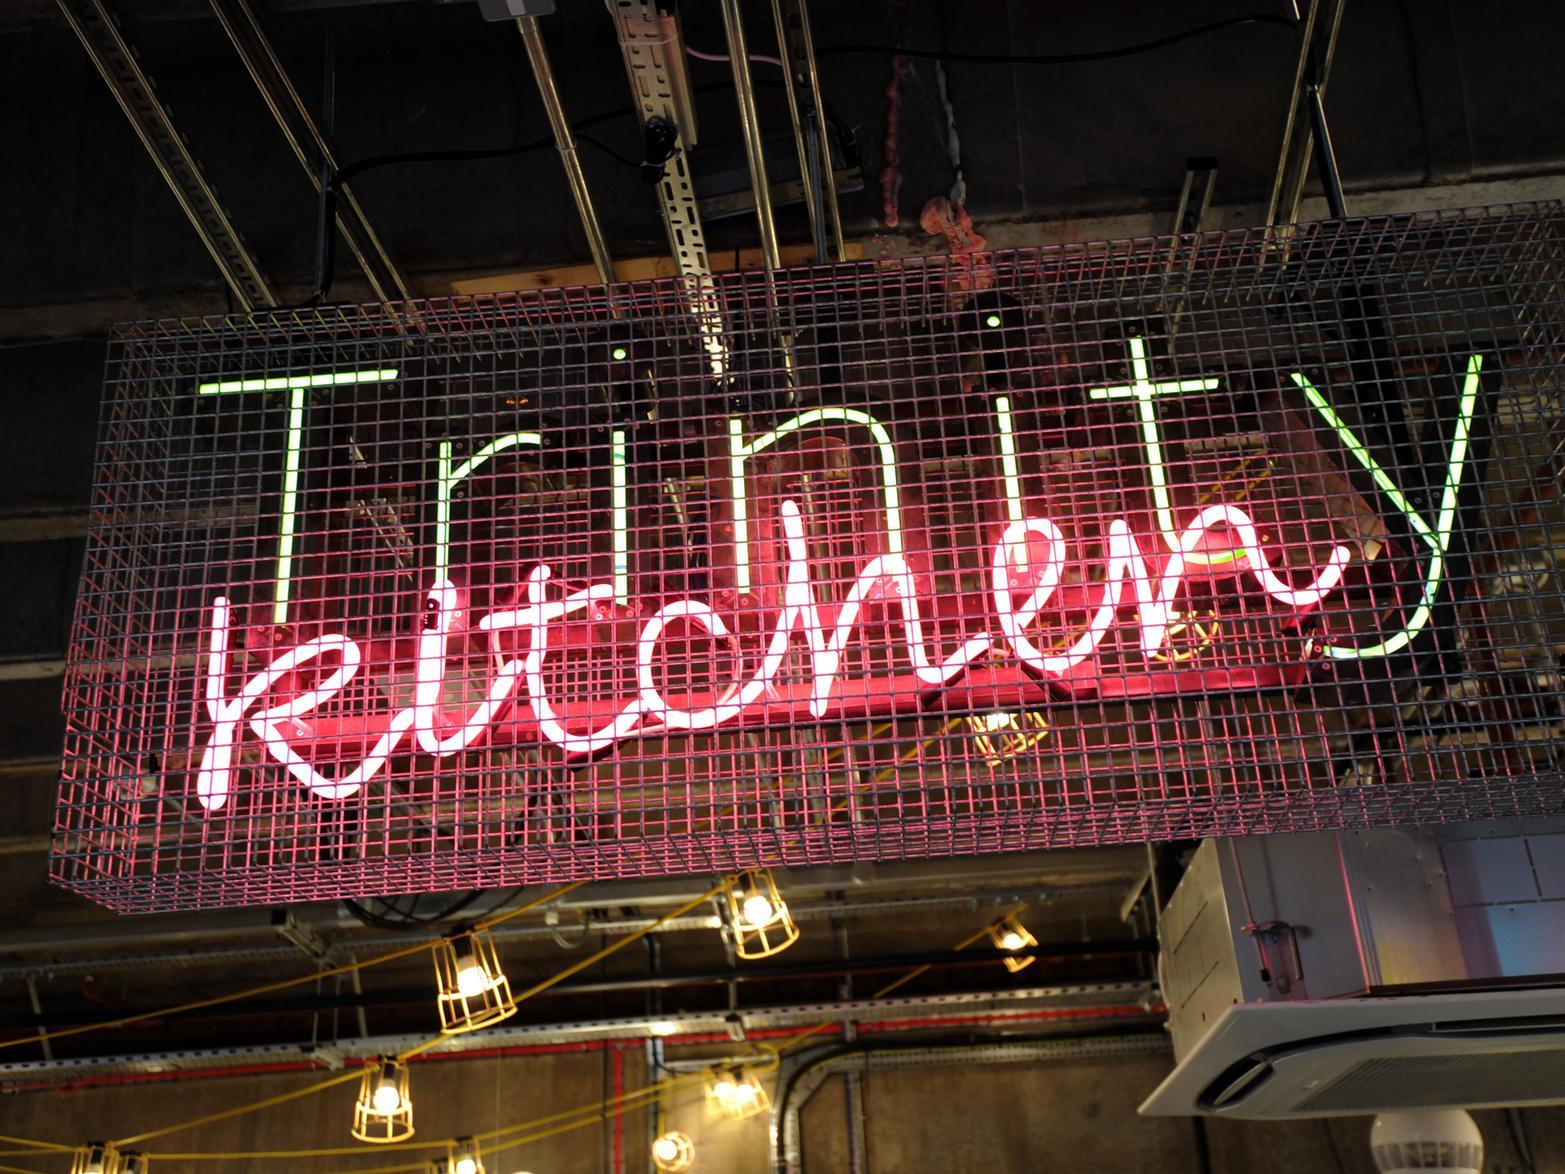 List of bars, restaurants and cafés reopening in Leeds Trinity Kitchen today